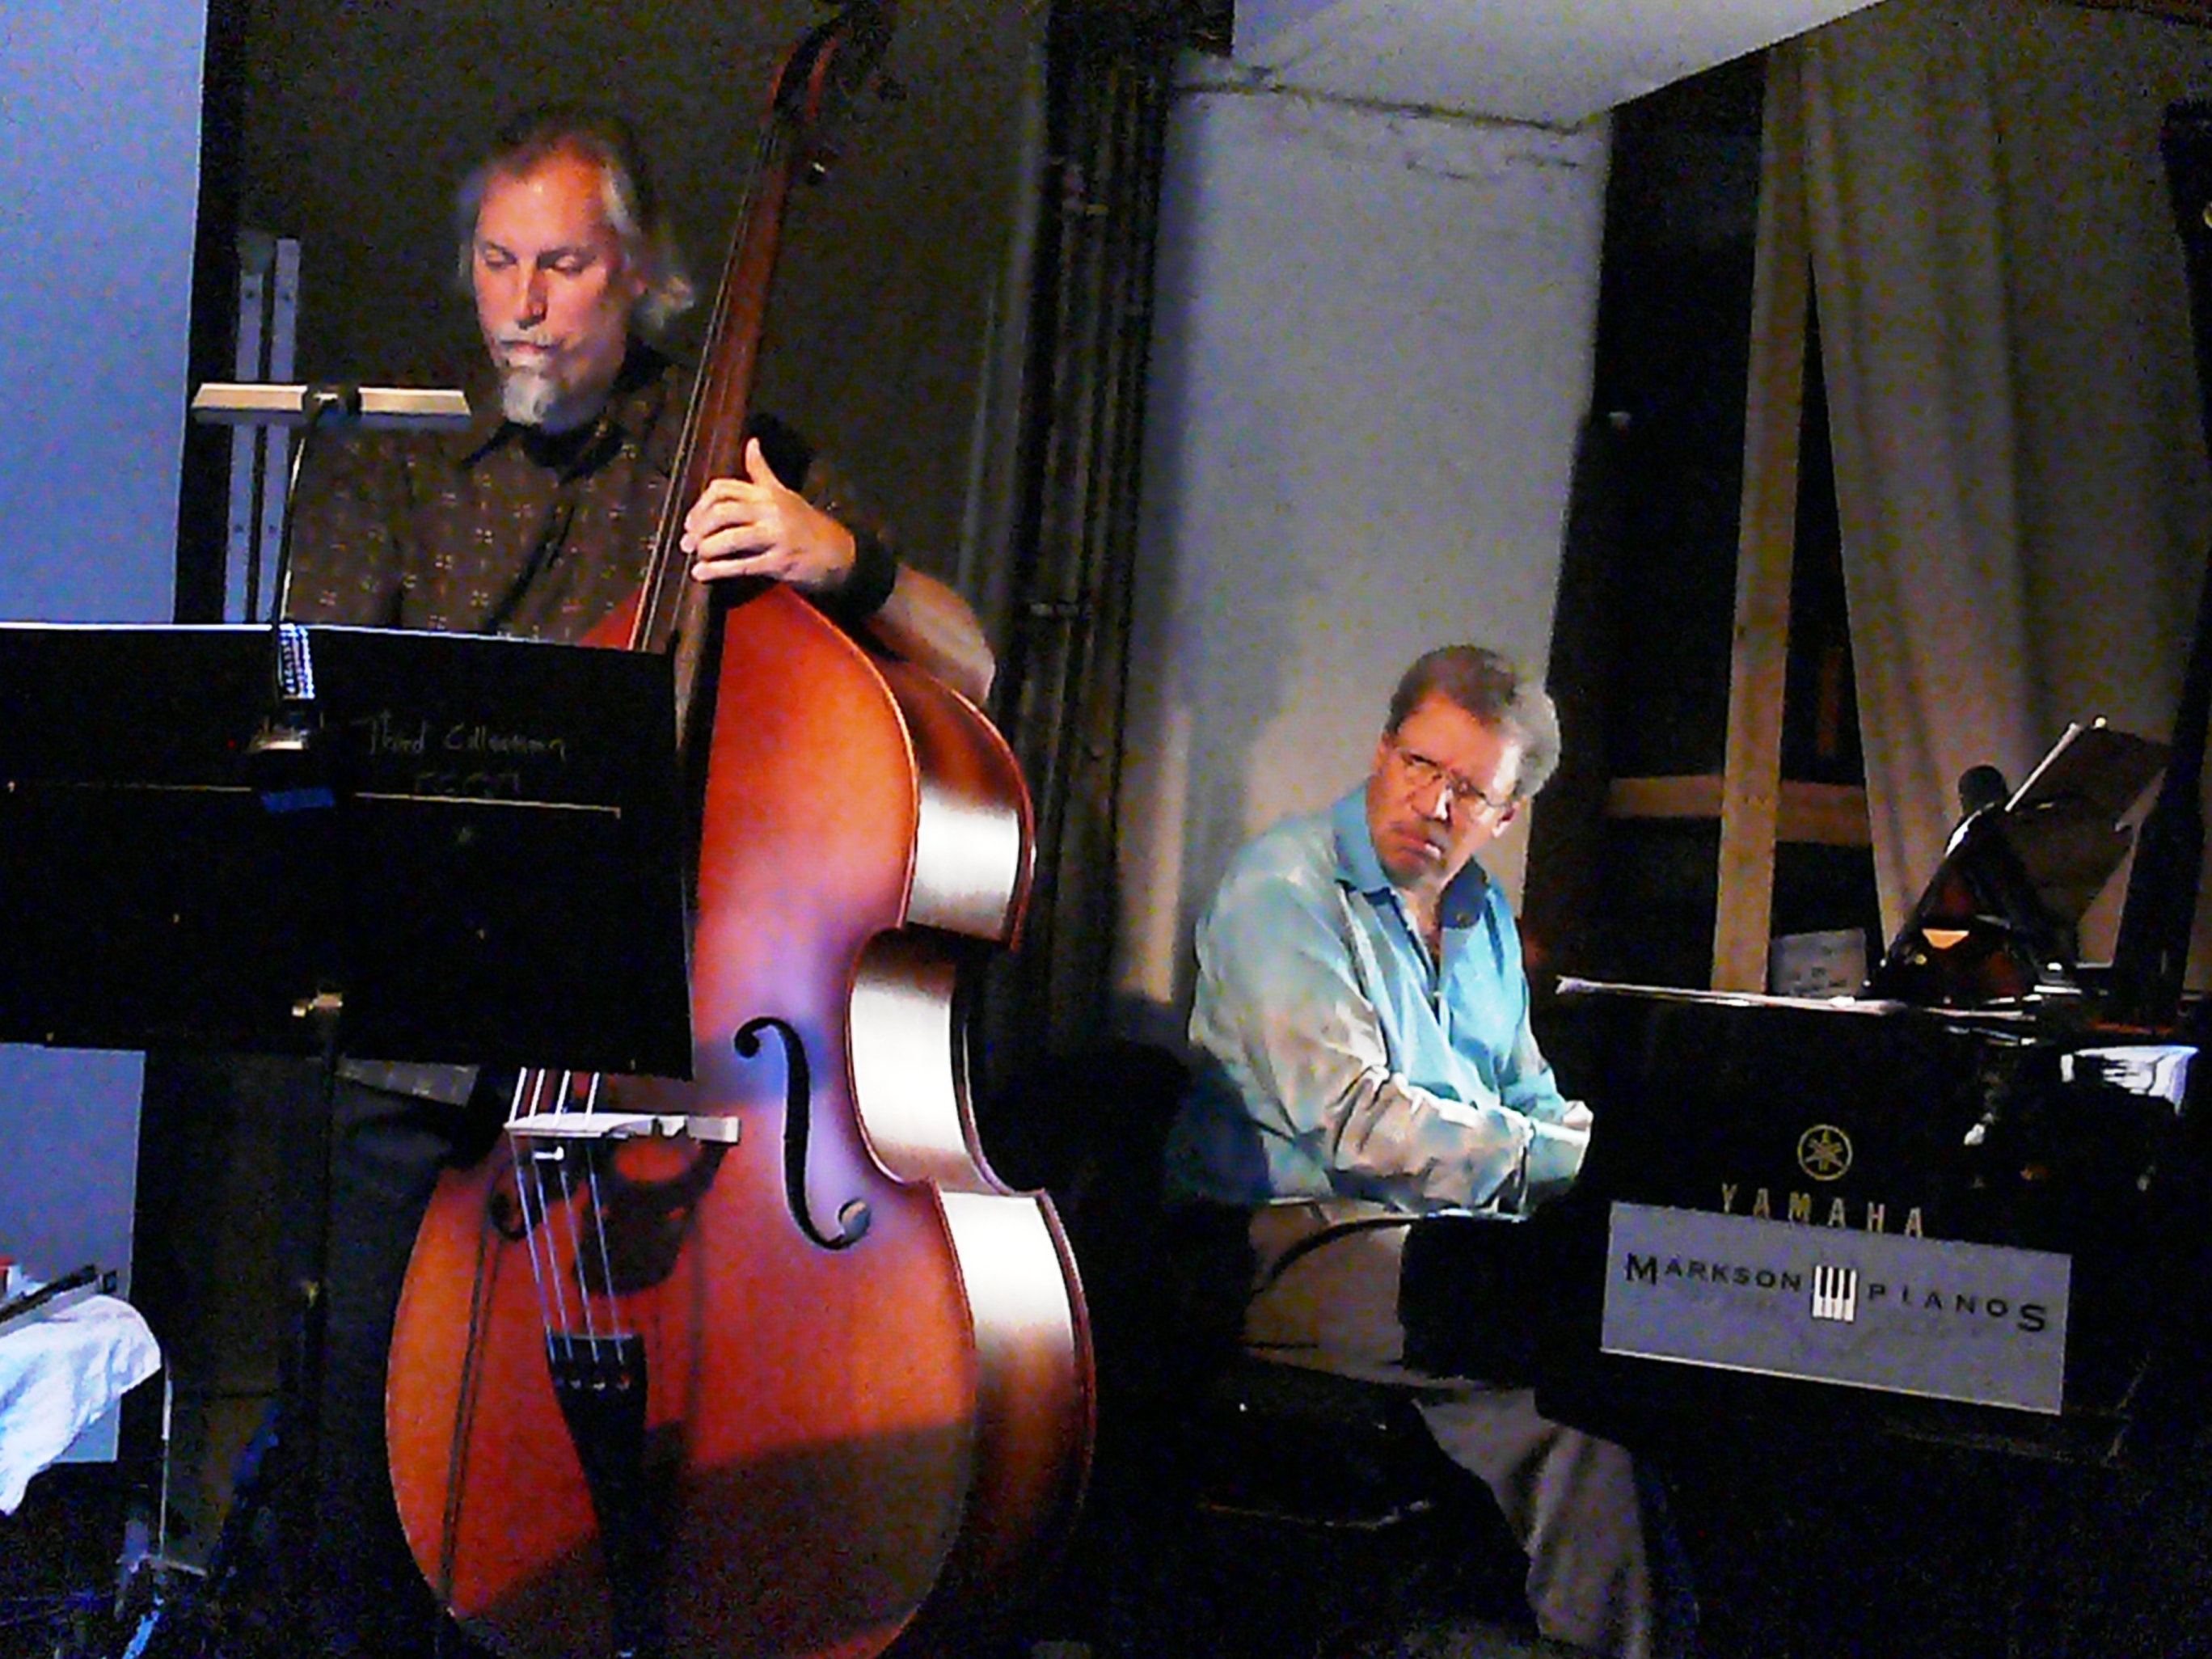 John lindberg and anthony davis at cafe oto as part of the london jazz festival in november 2013